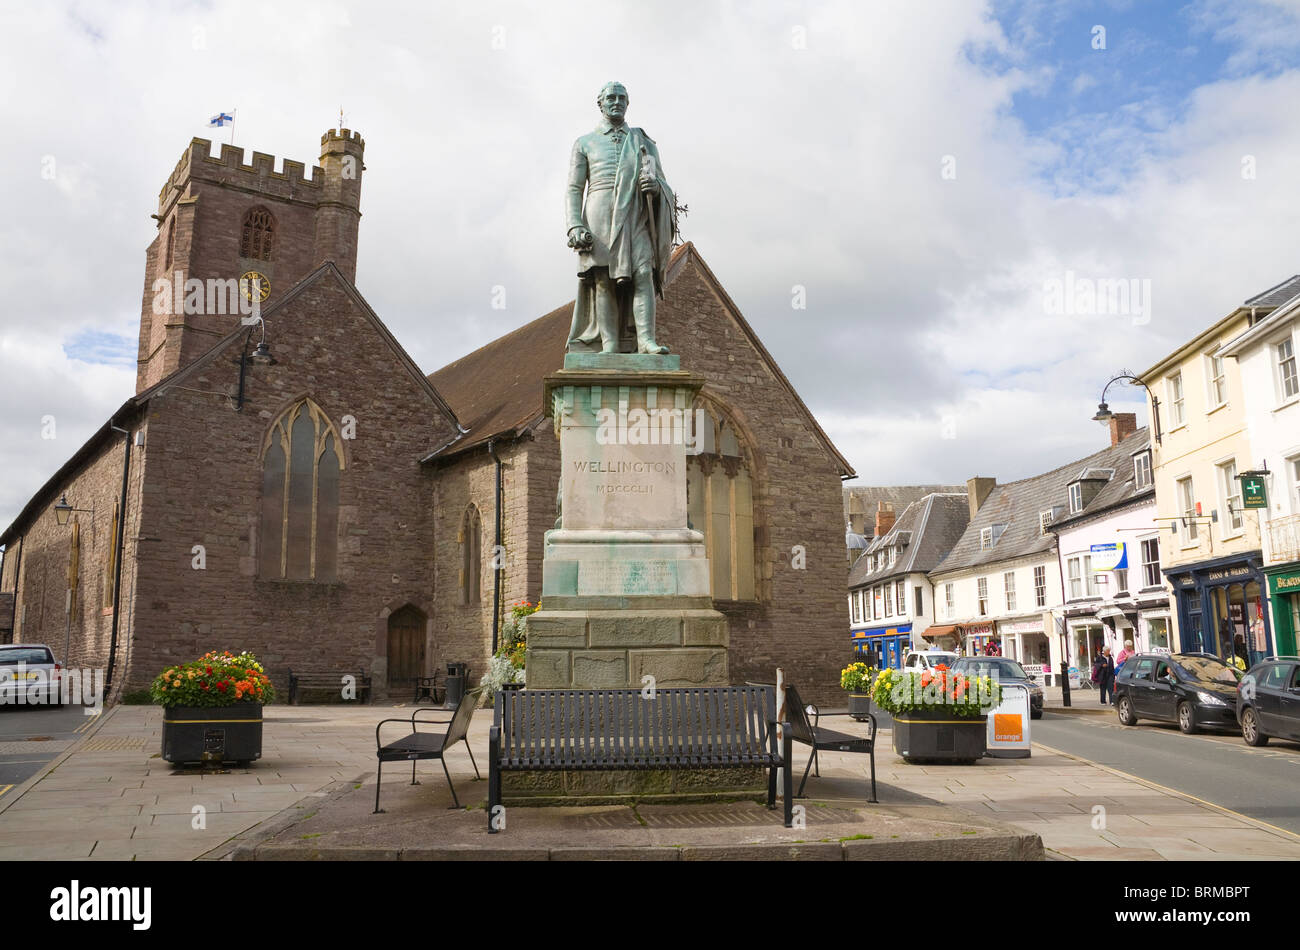 Brecon Powys Wales UK Duke of Wellington statue in front of St Mary's Church in centre of old market town - Stock Image